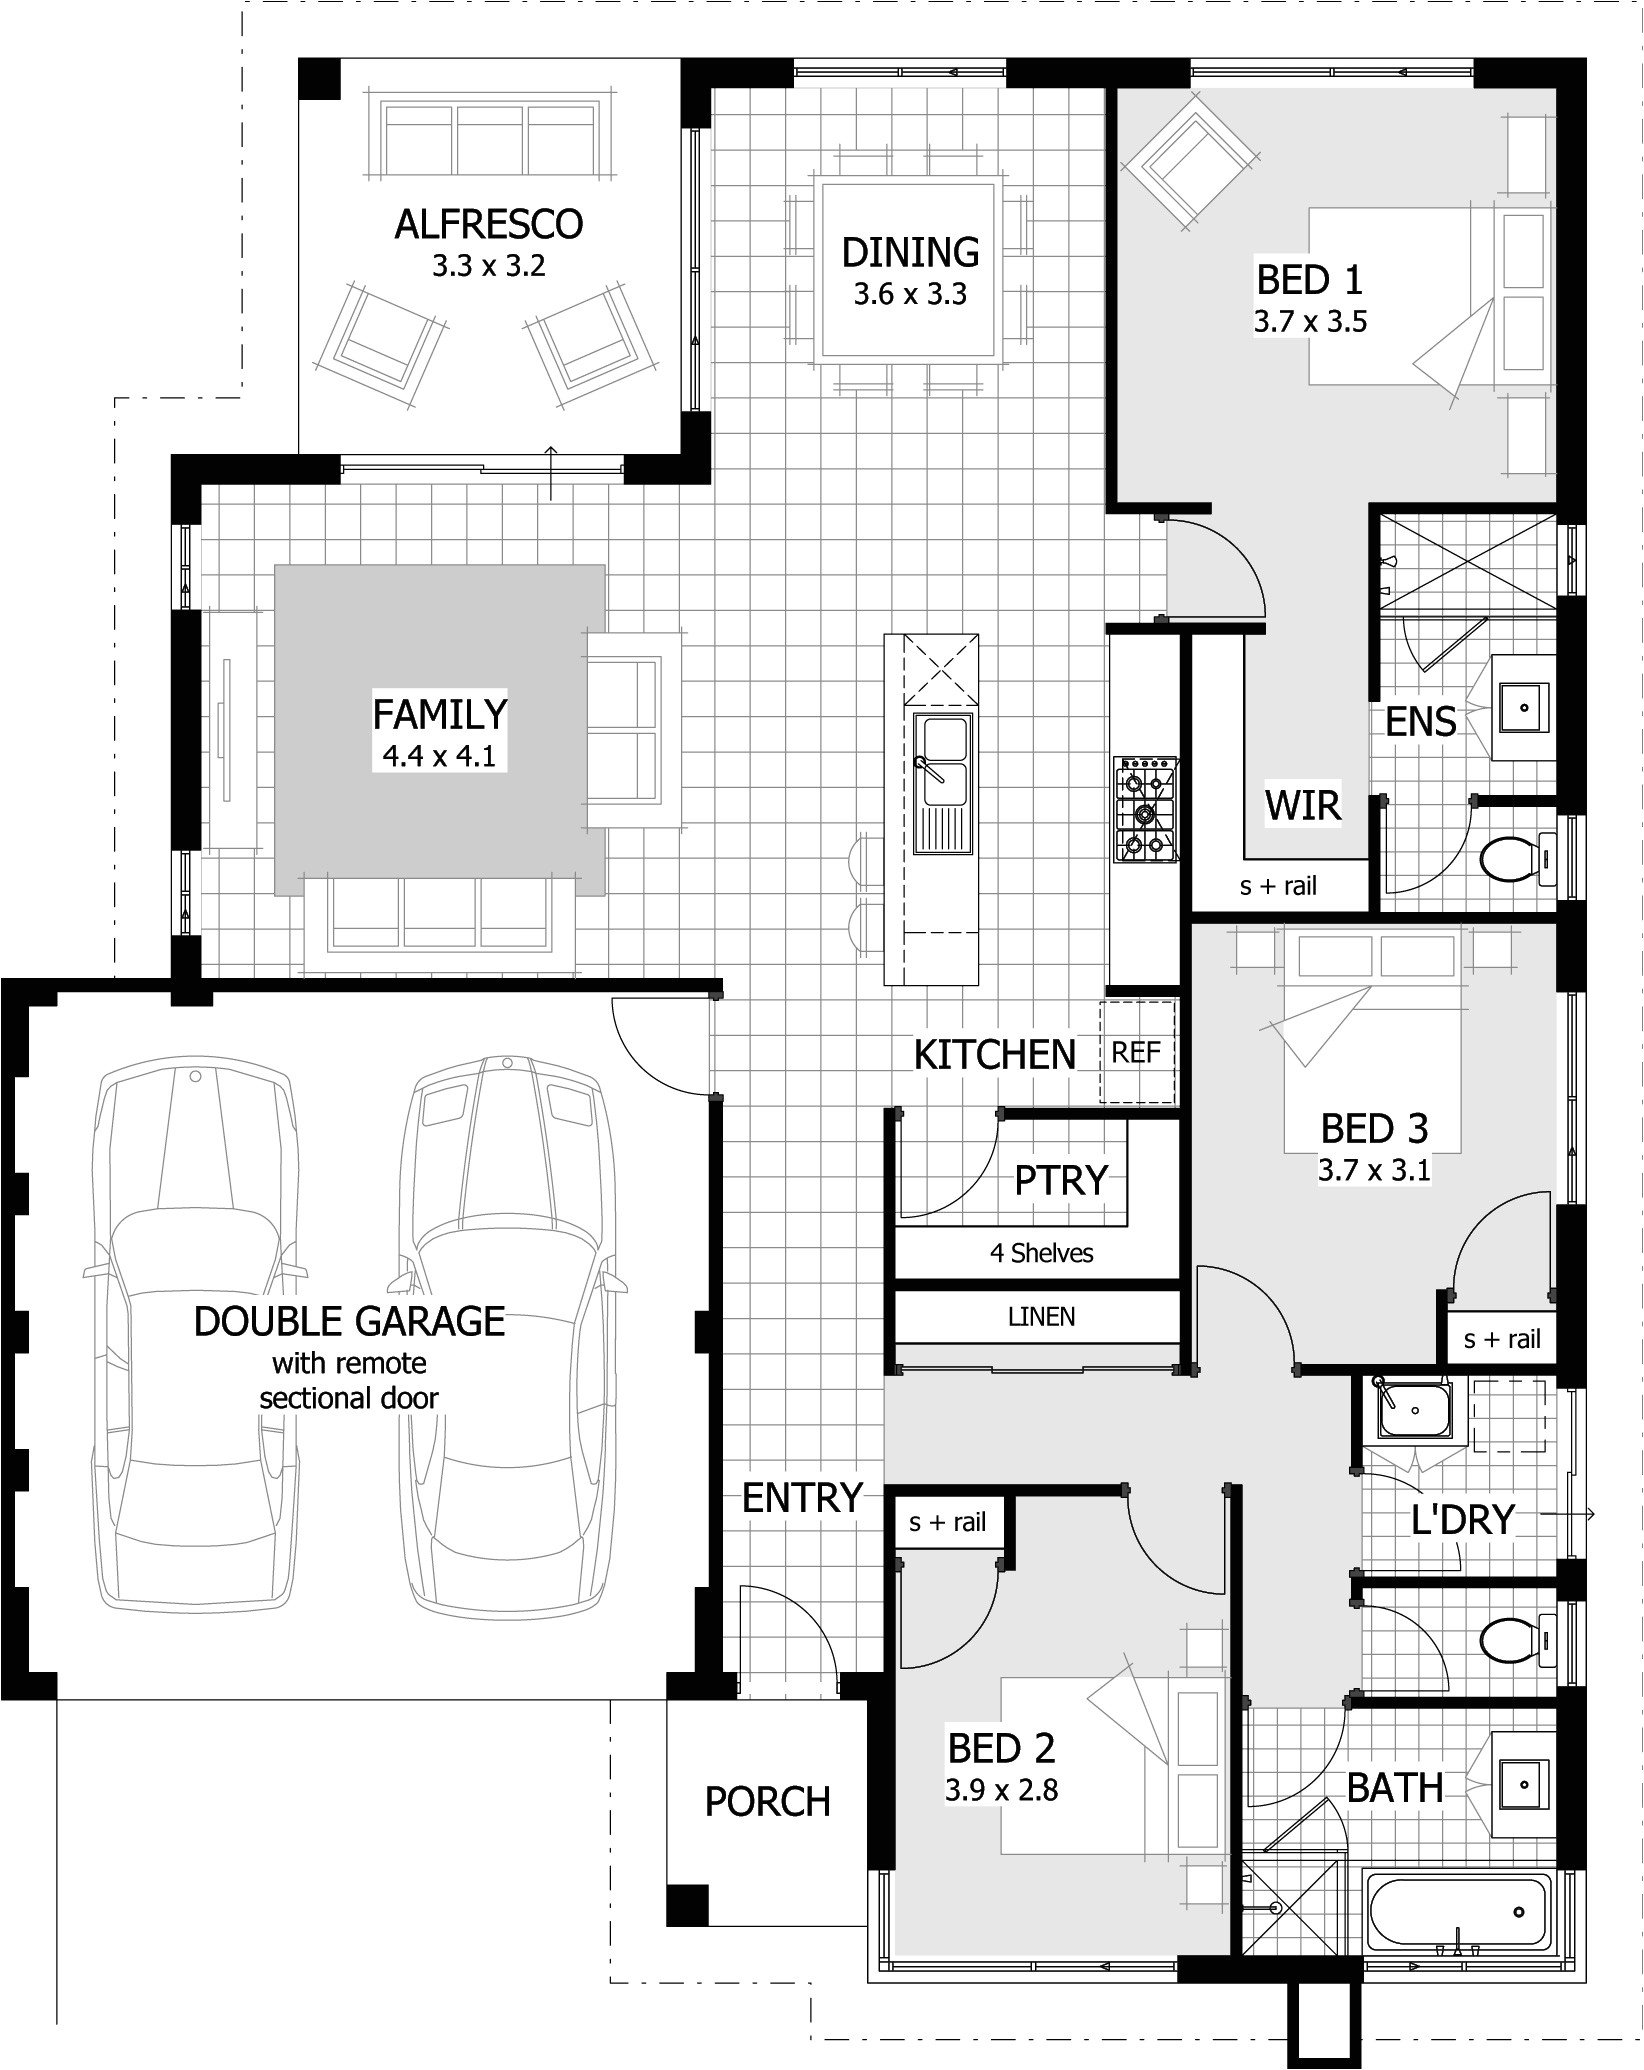 3 bedroom homes floor plans with garage